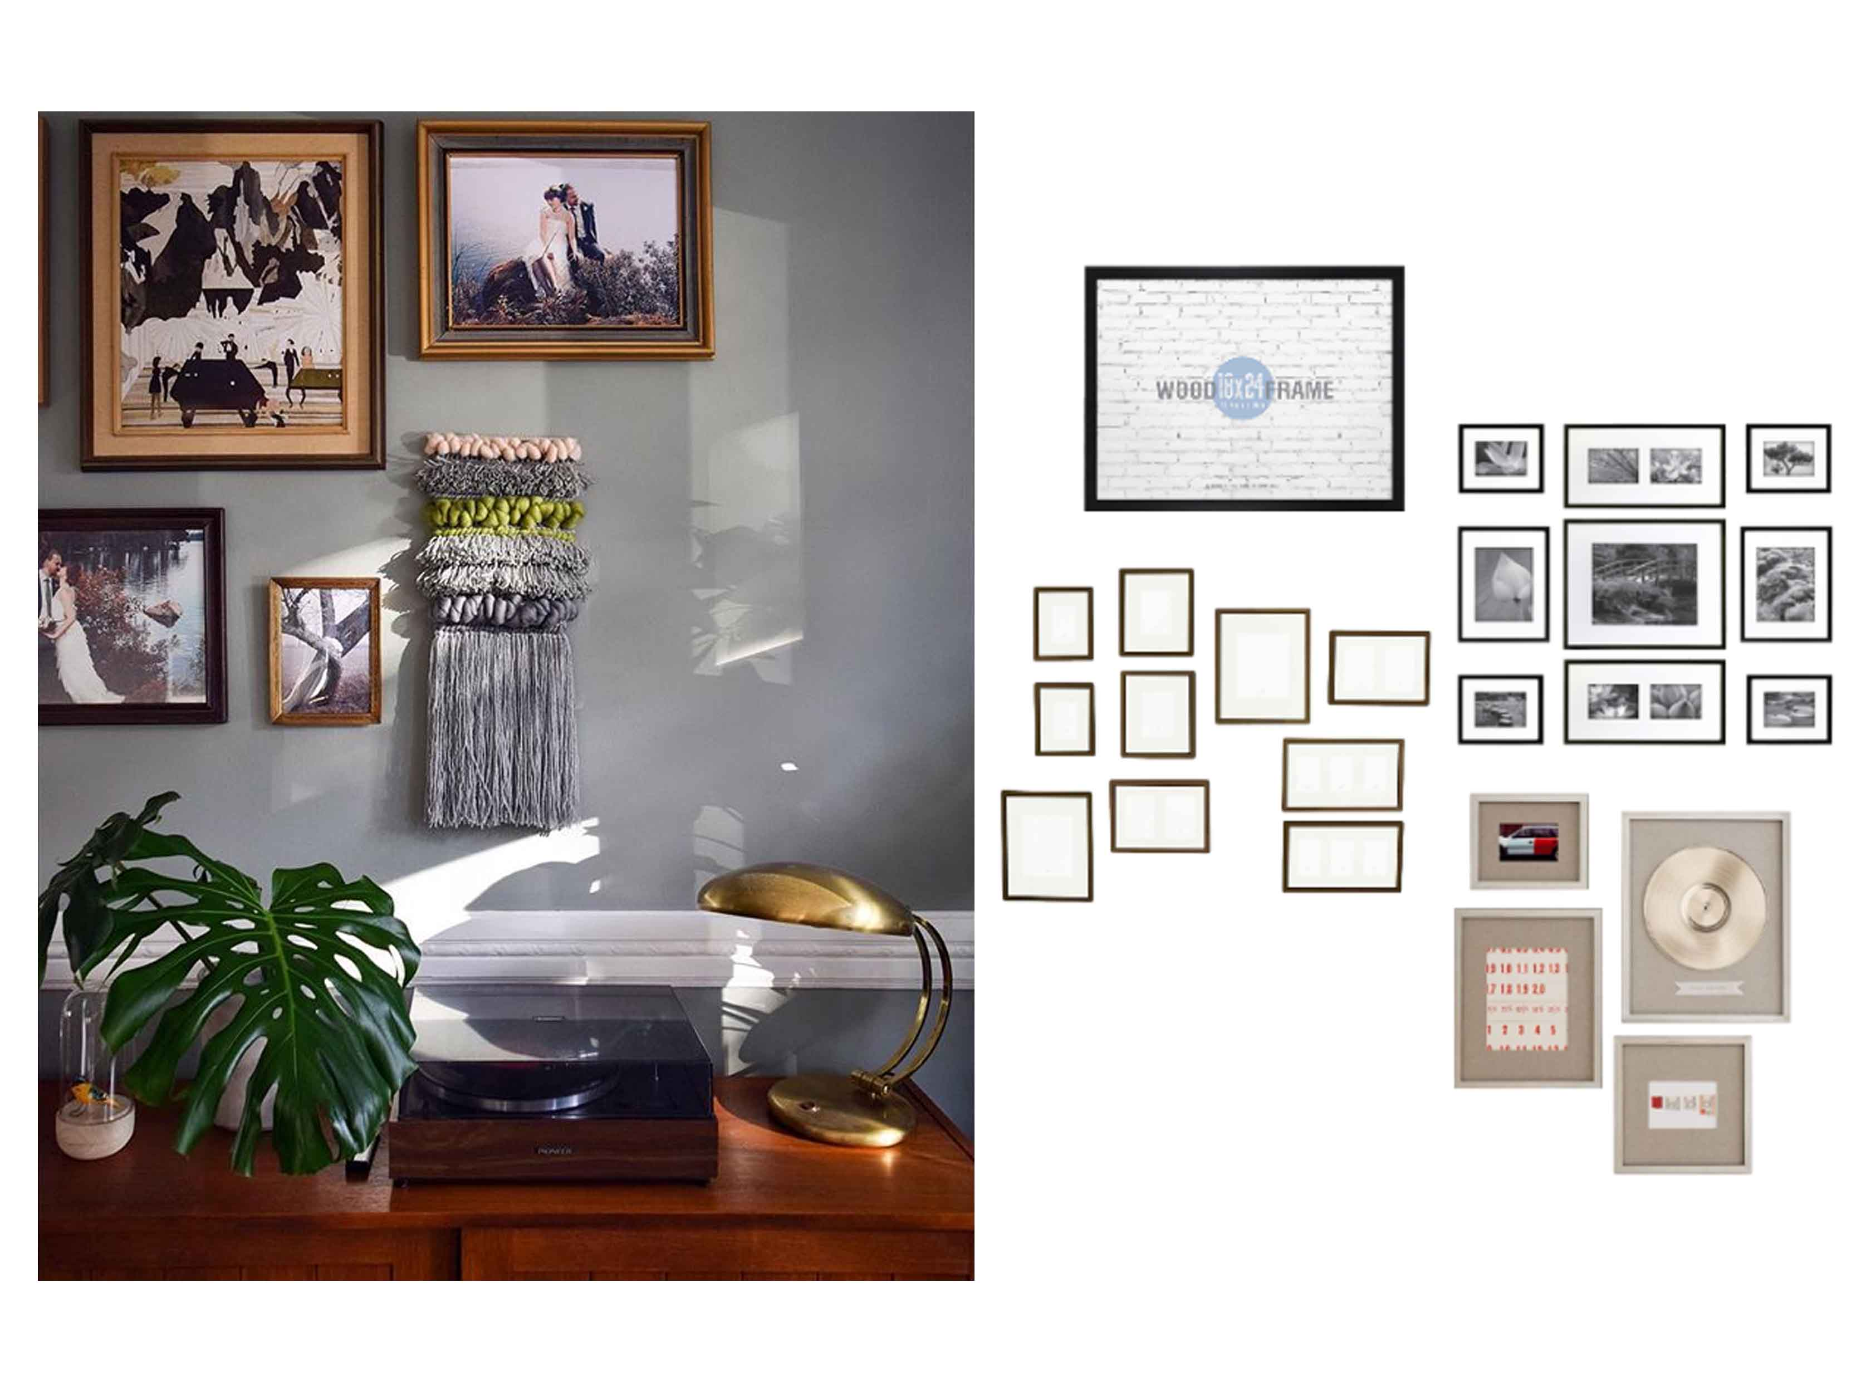 Online interior design q a for free from our designers for Interior design space planning questionnaire